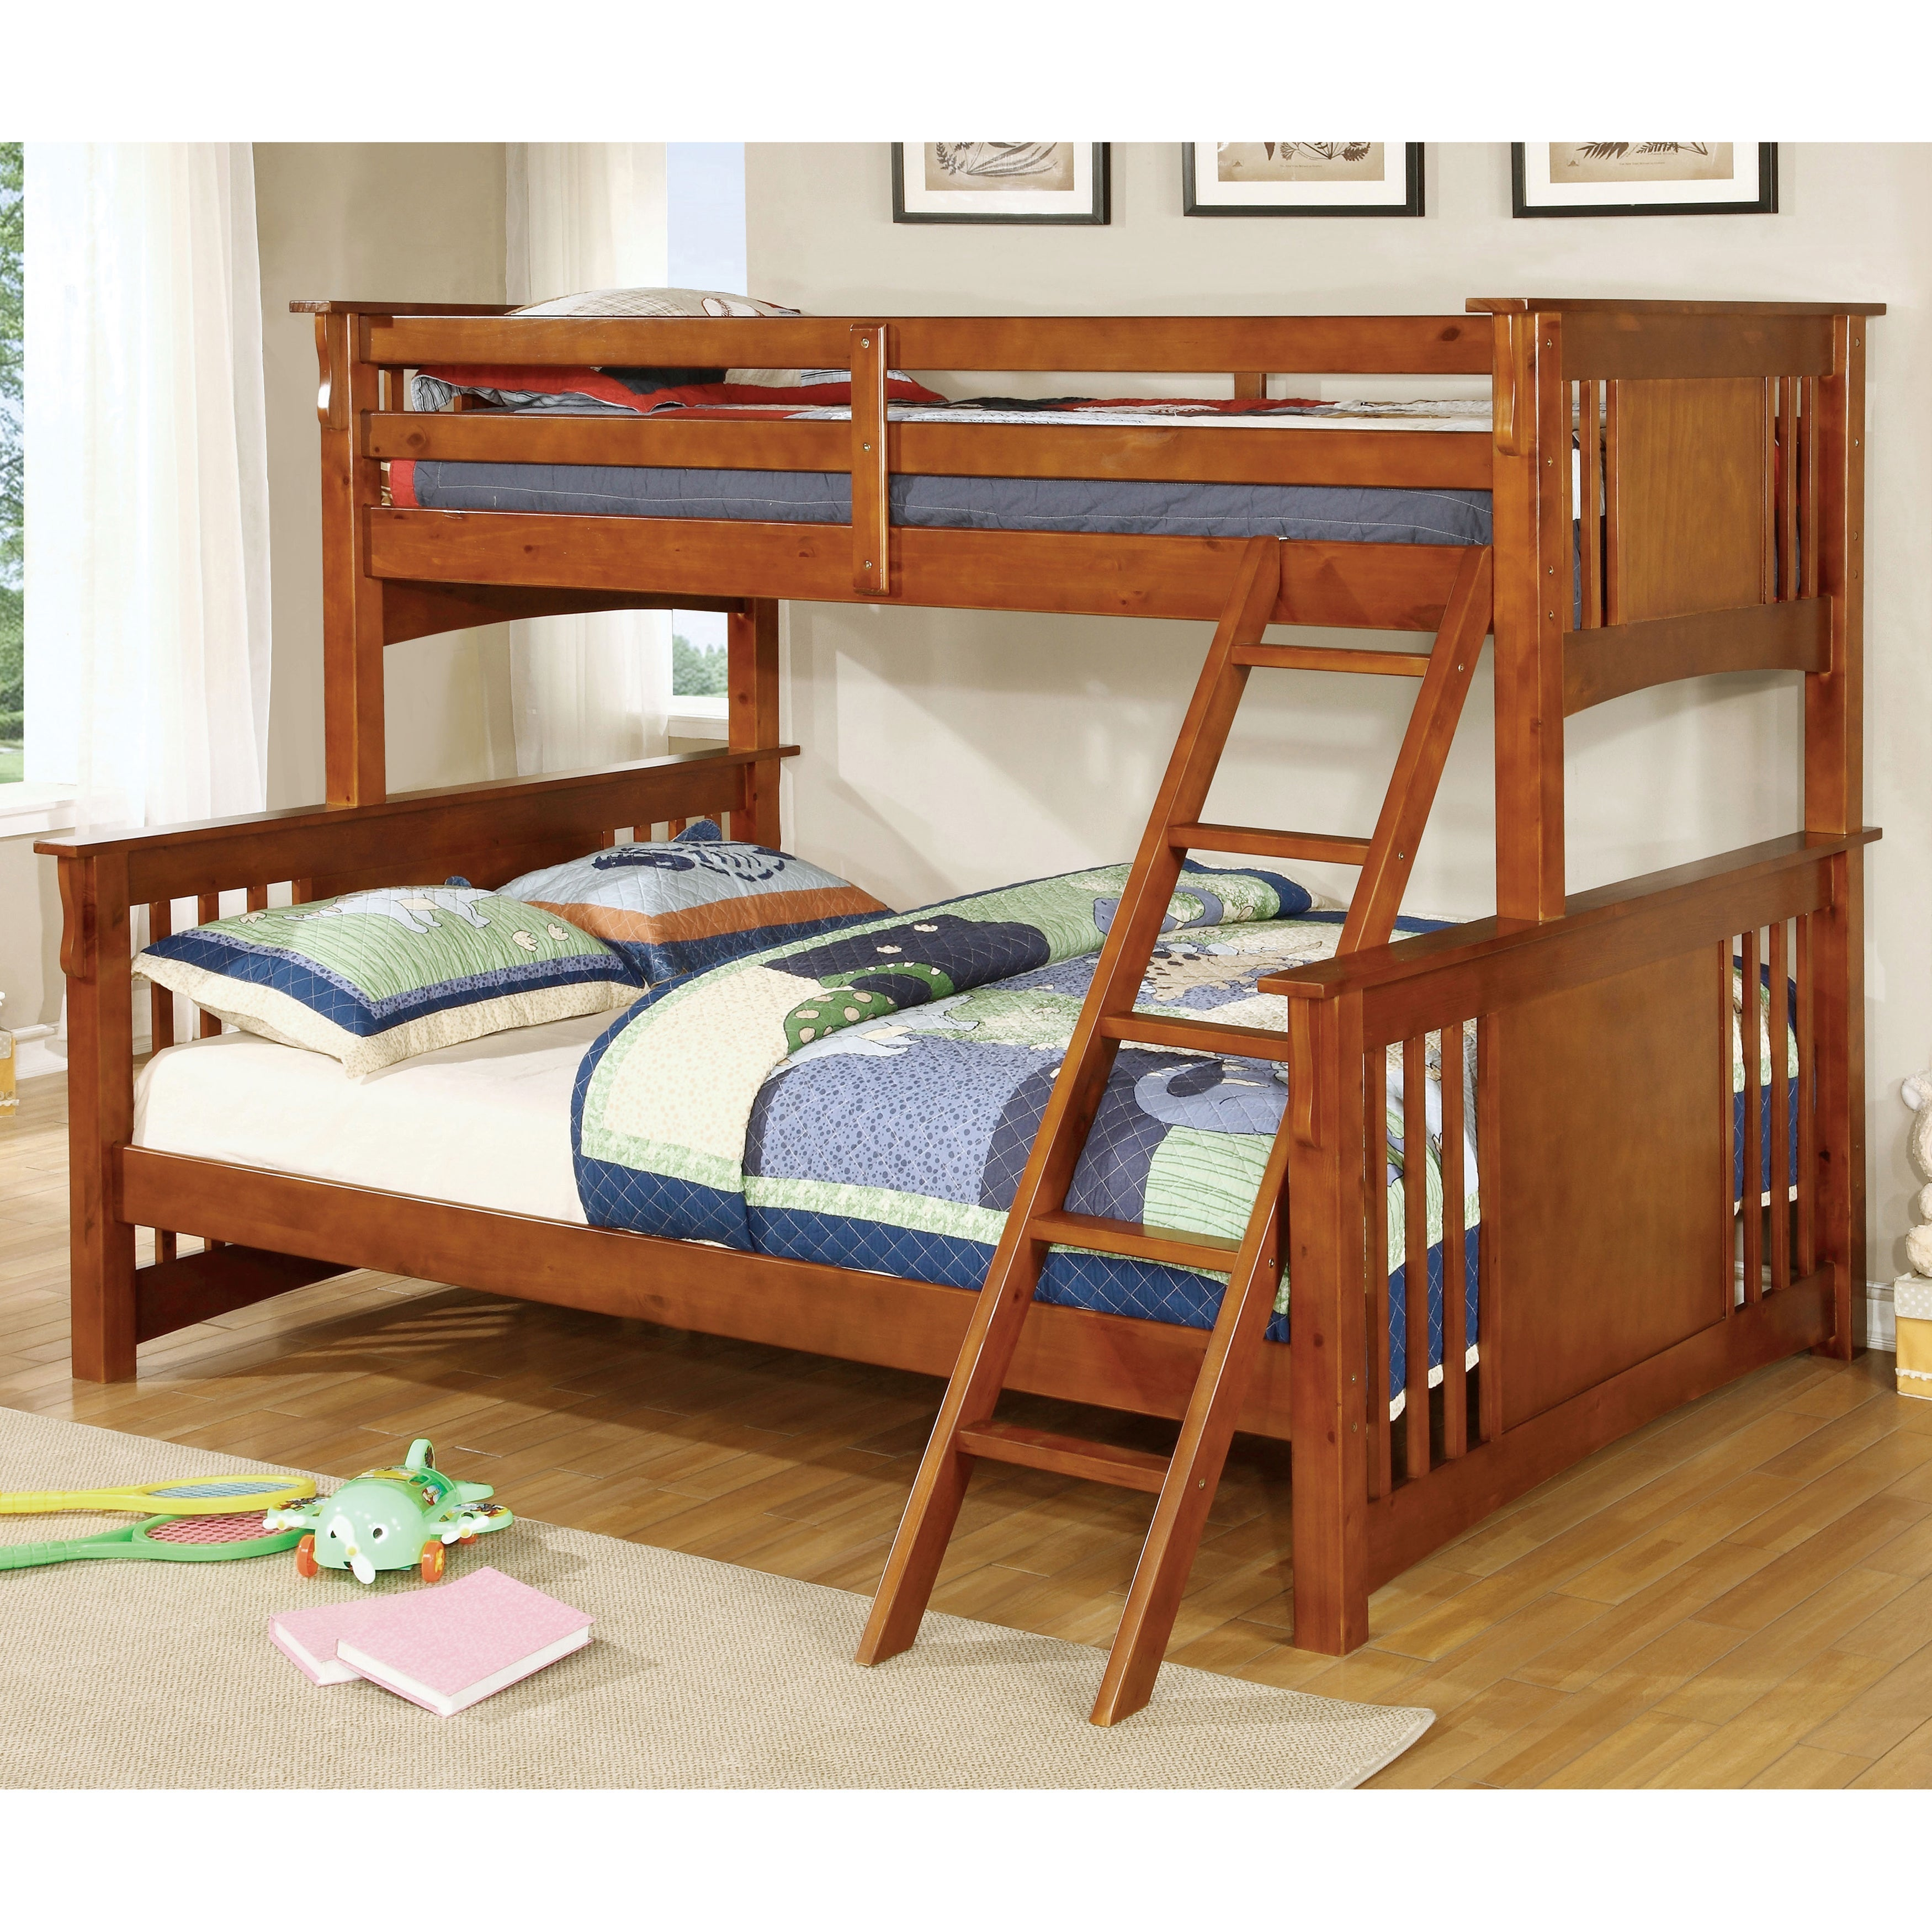 Furniture Of America Cude Mission Twin Xl Over Queen Kid Bunk Bed Overstock 10001083